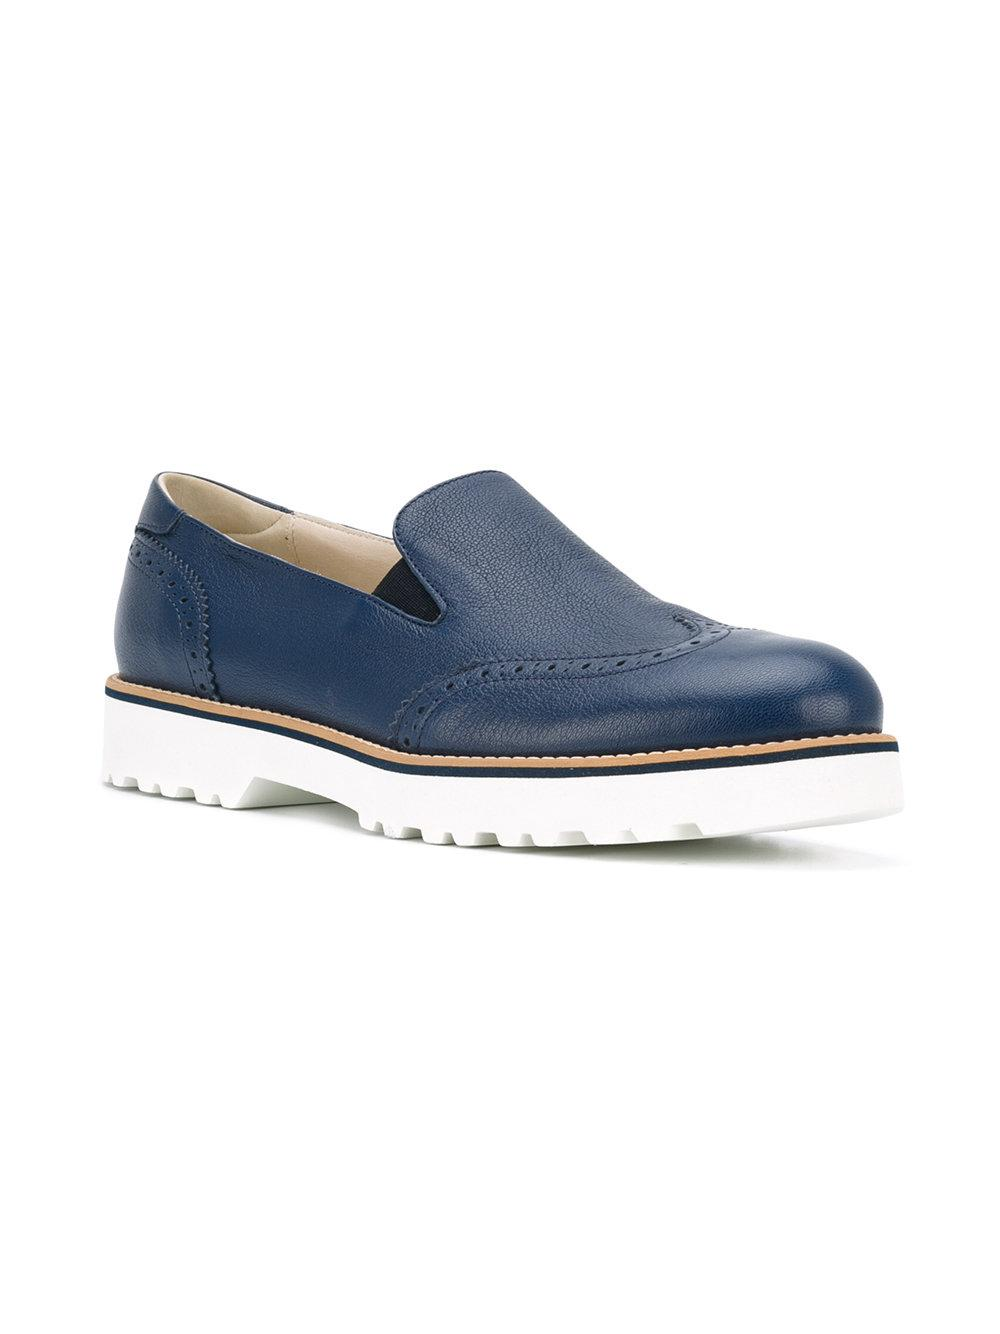 3635d22a7cf4 Lyst - Hogan Chunky Sole Loafers in Blue